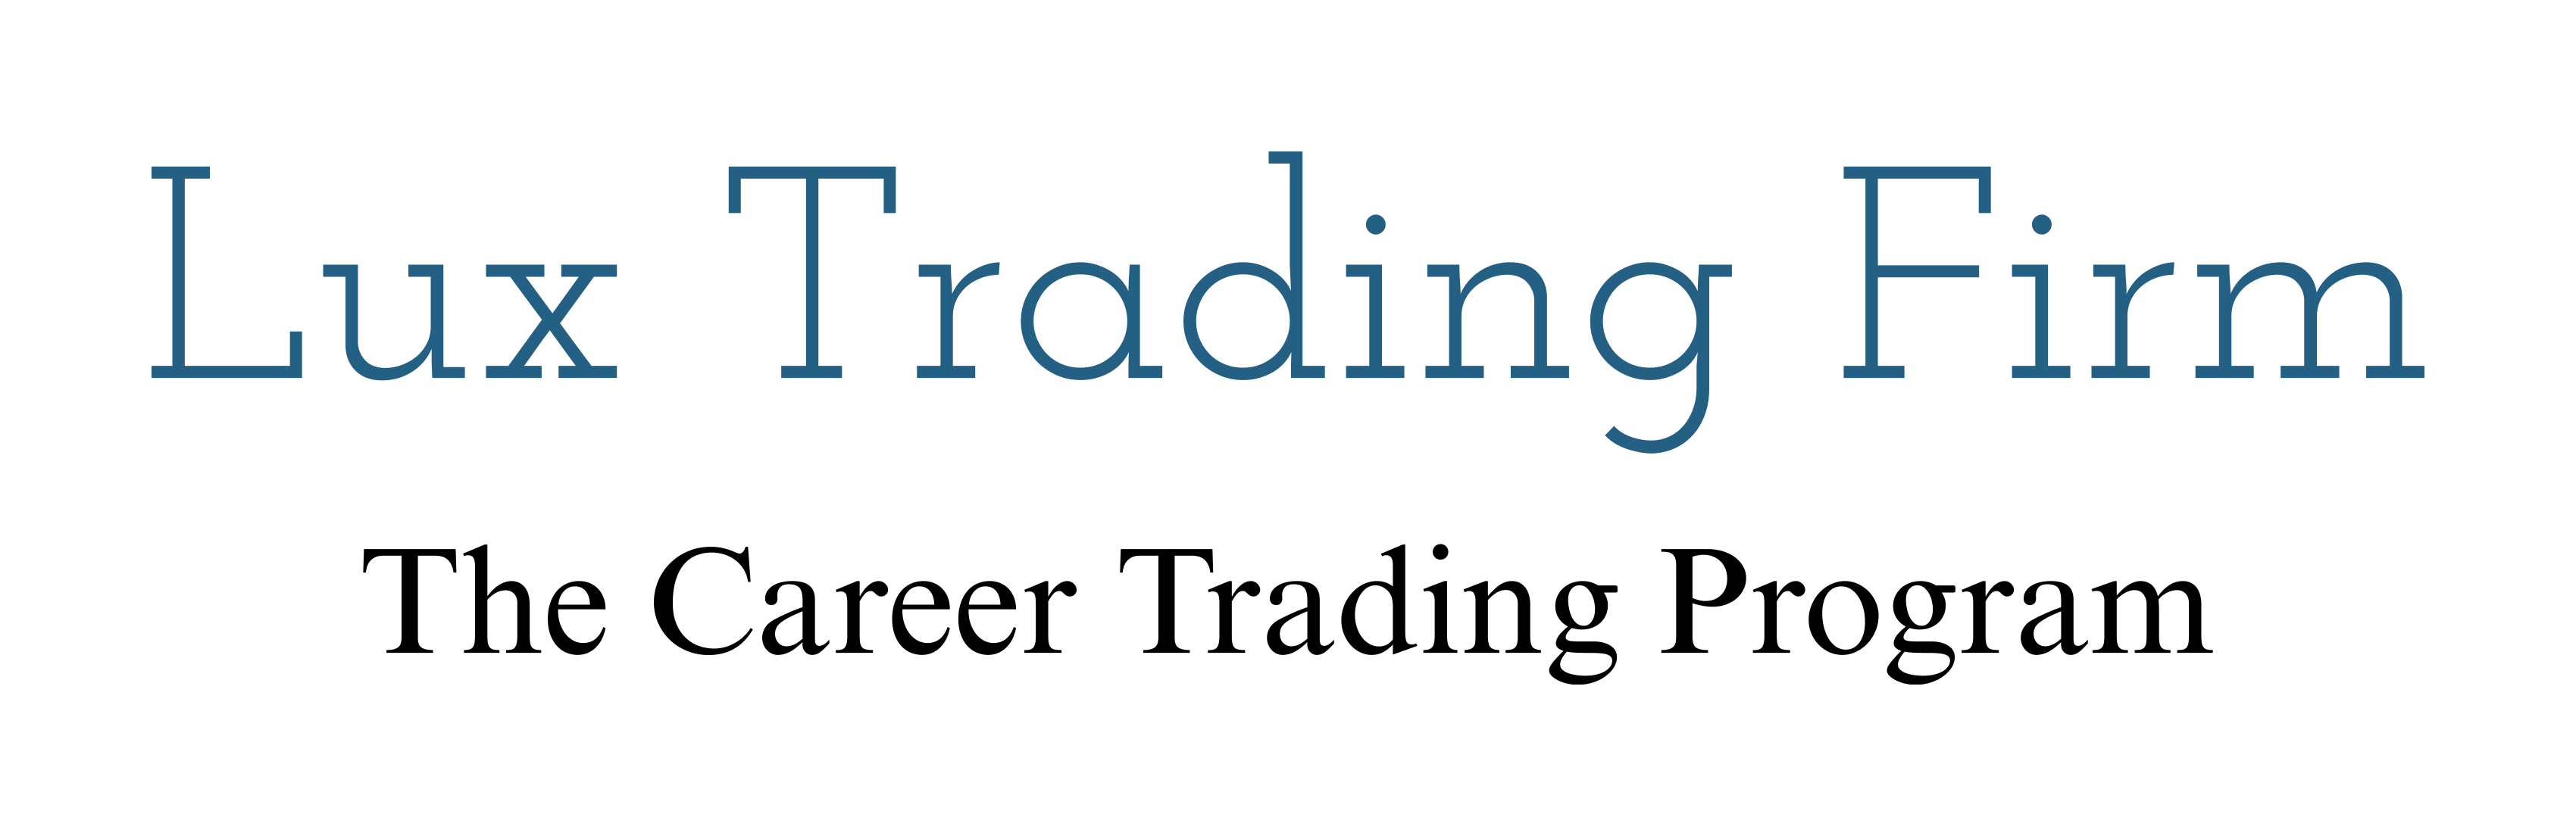 Lux Trading prop trading firm logo